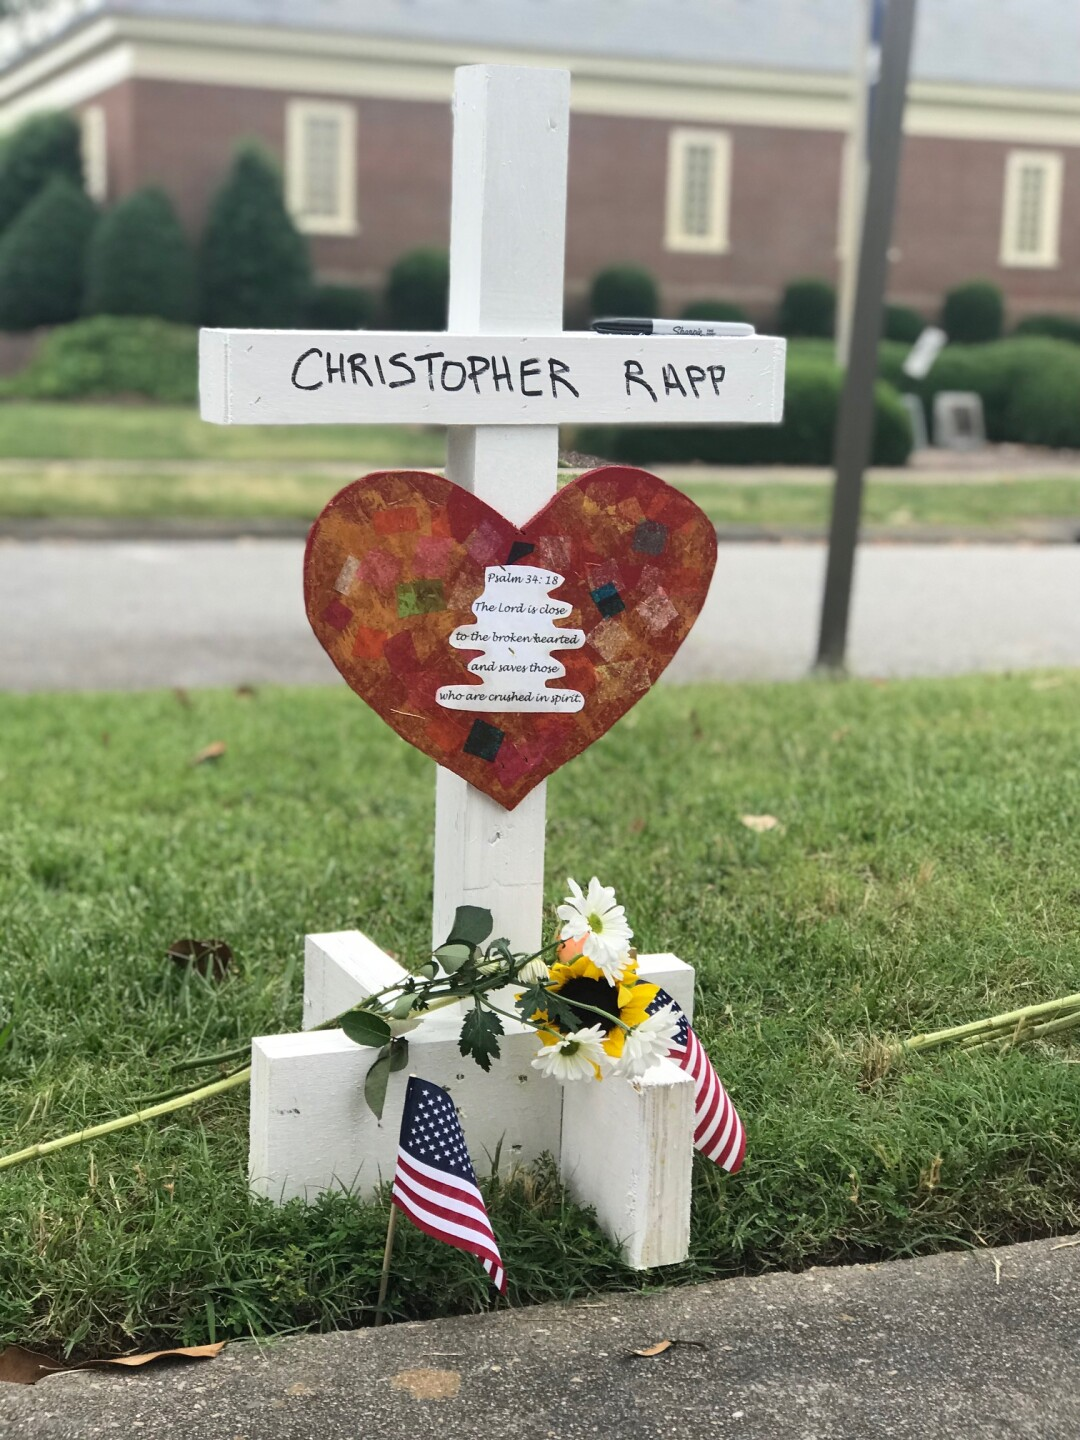 Photos: 'People coming from all over' to Virginia Beach memorial: 'We're suffering, but we arestrong'